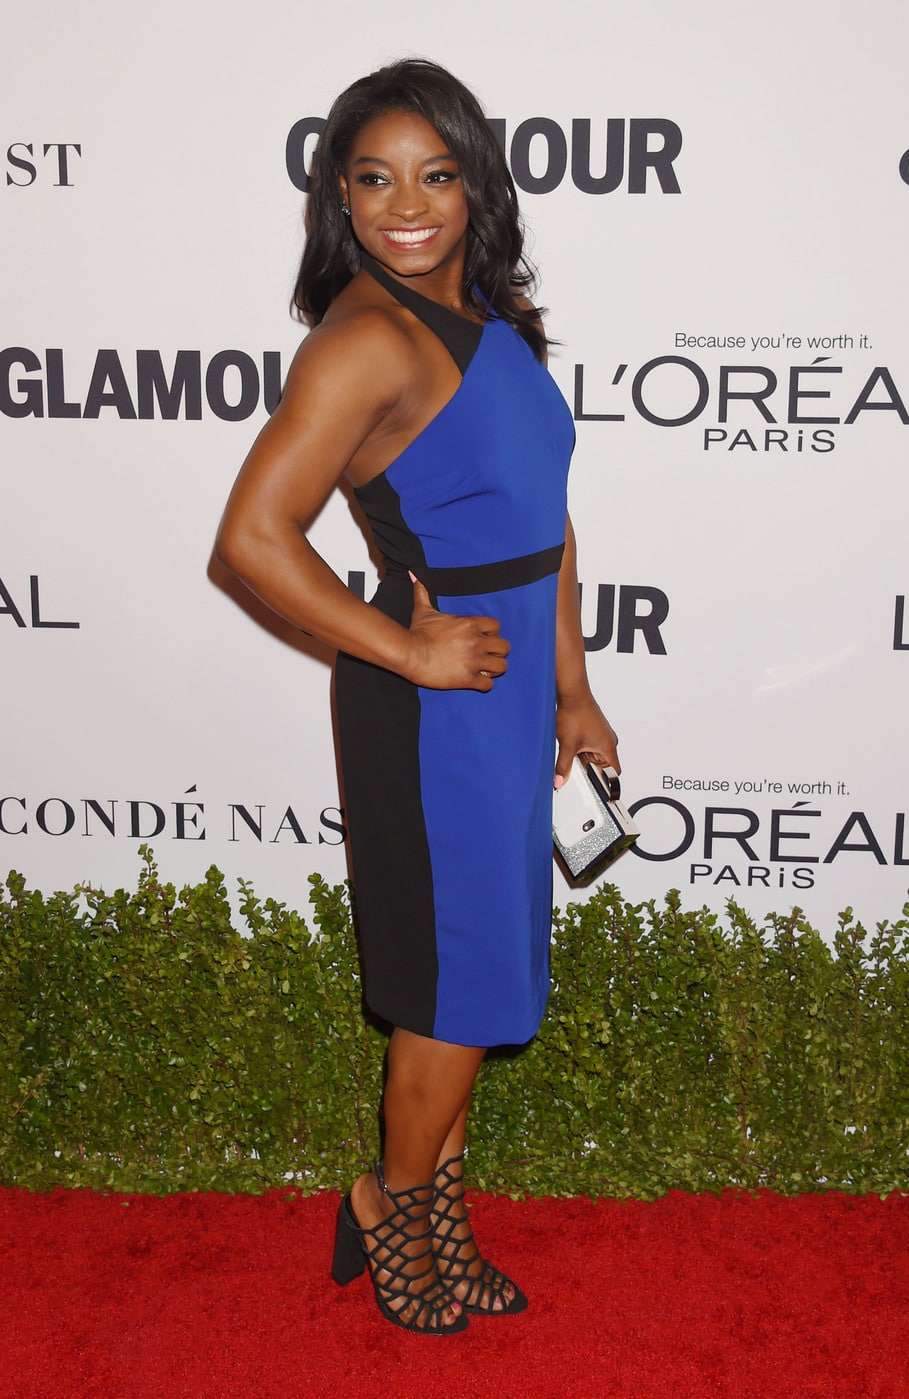 Simone Biles in a blue and black dress at the Glamour Women of the Year Awards 2016